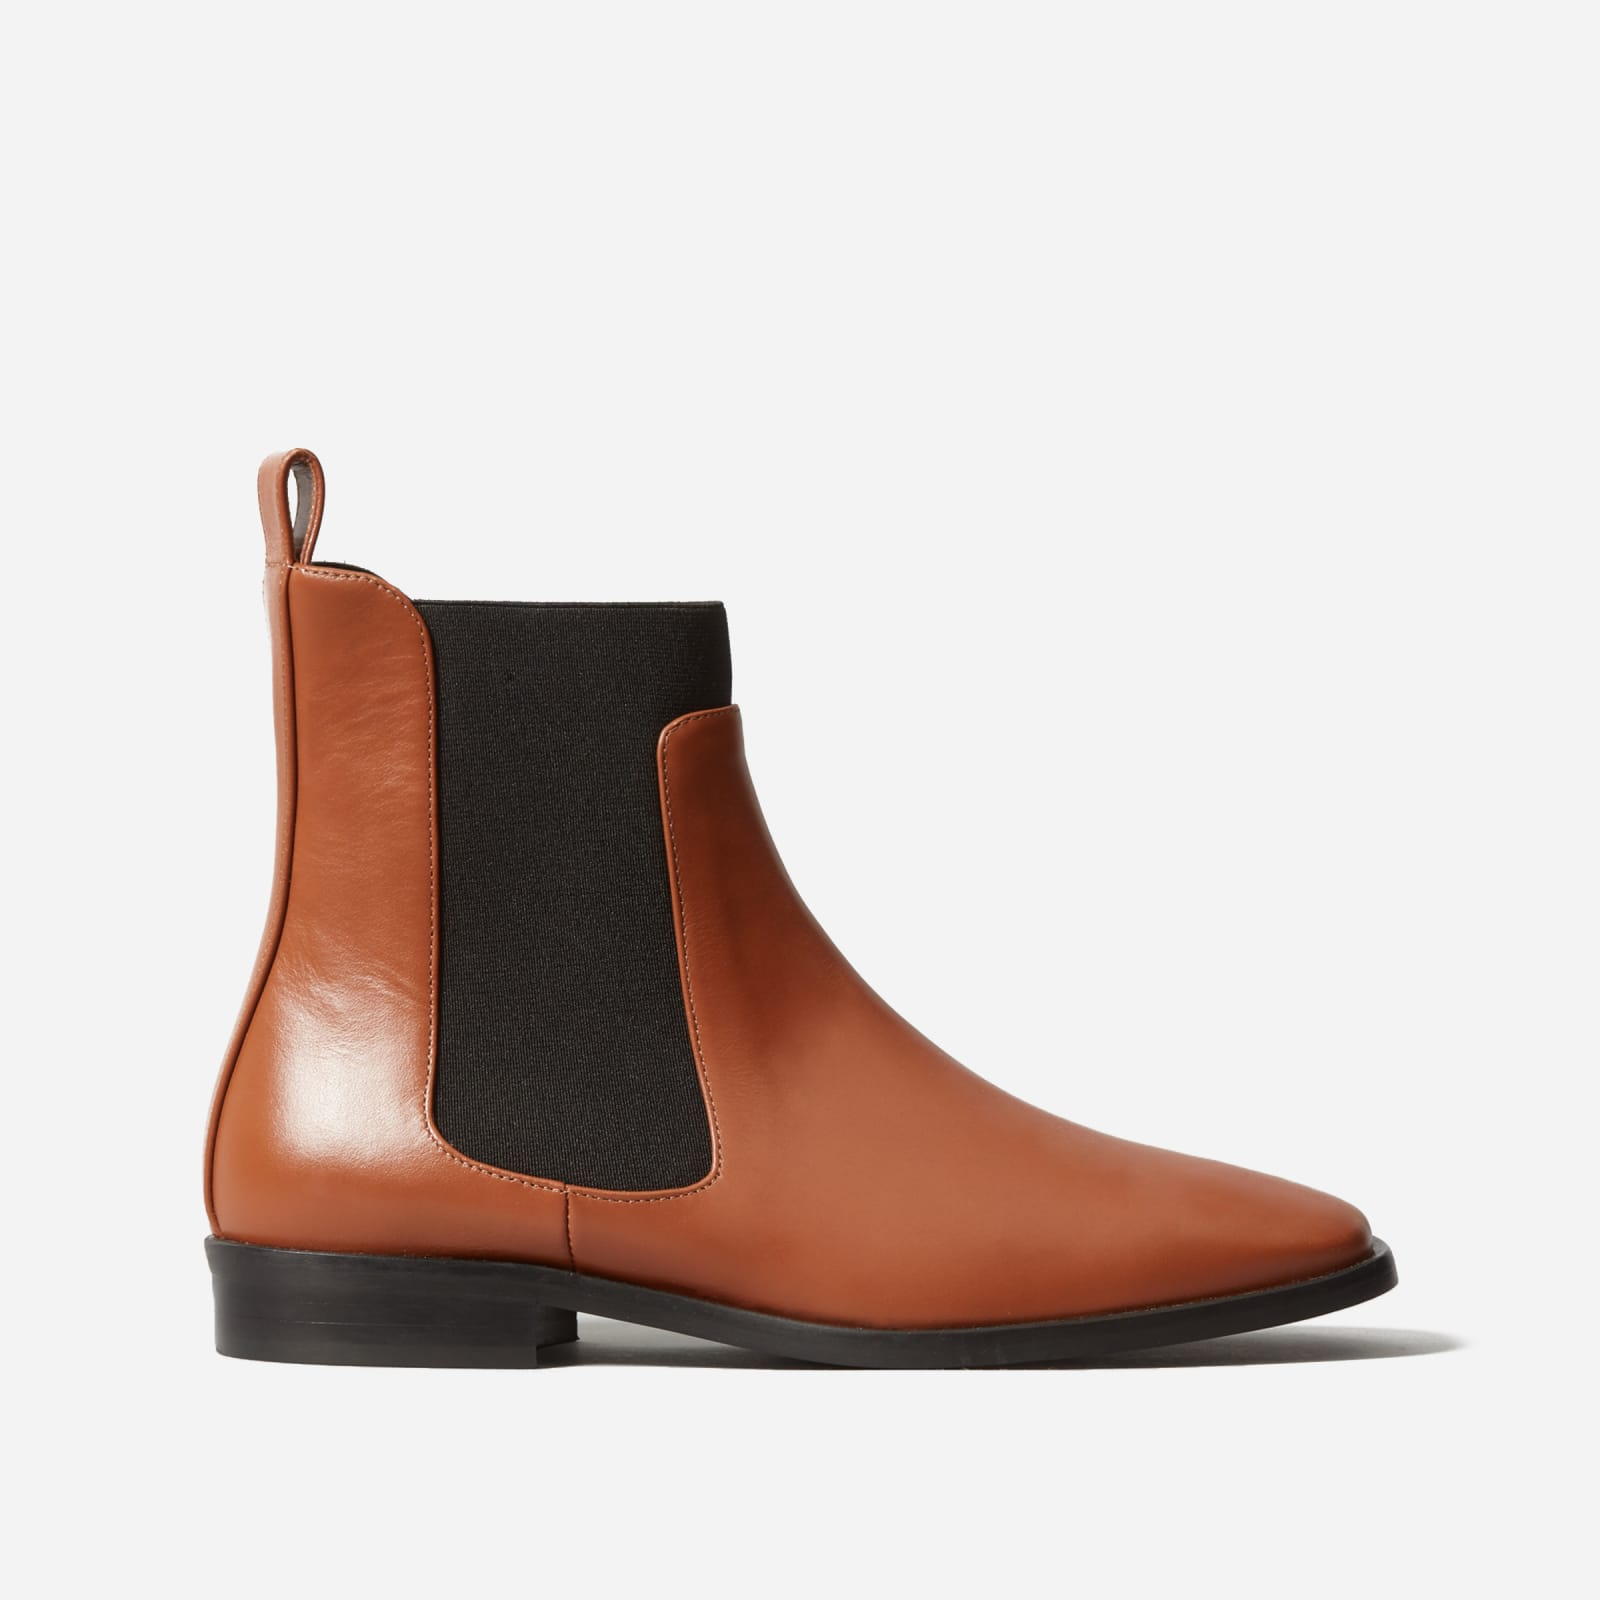 square toe chelsea boot by everlane in peanut, size 5